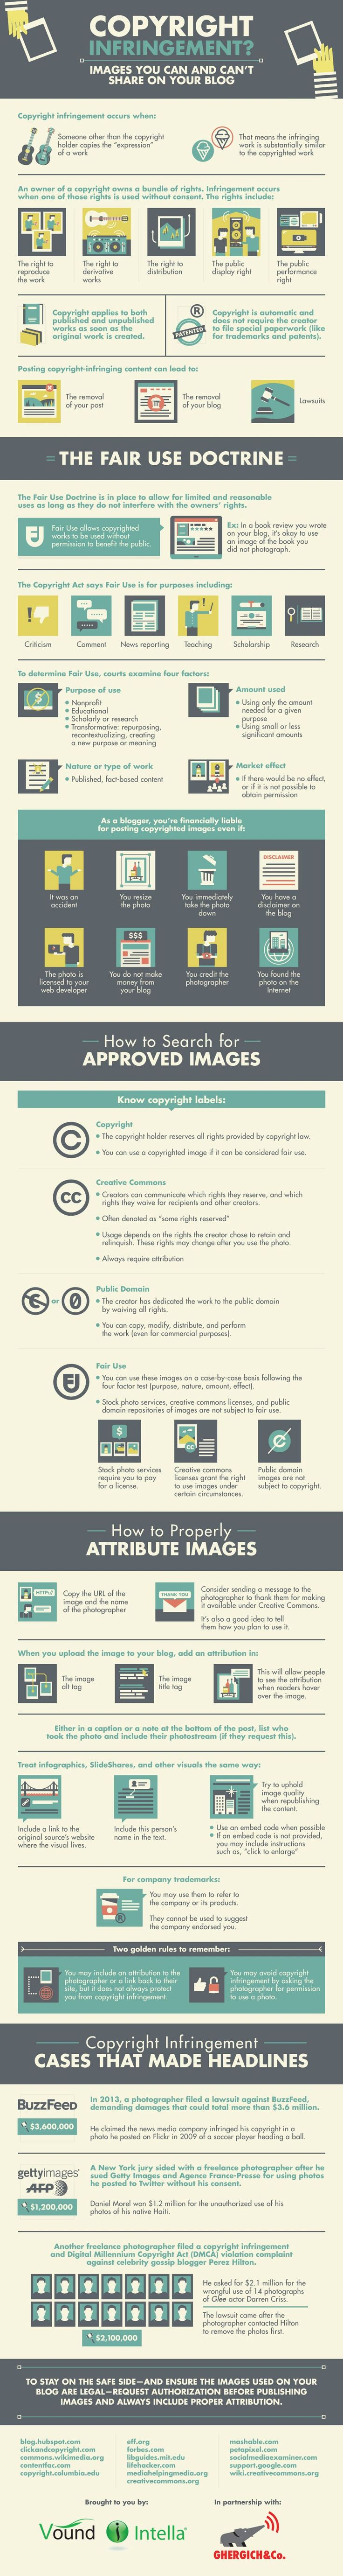 Copyright Infringement: Images You Can and Cant Share on Your Blog | Blogelina